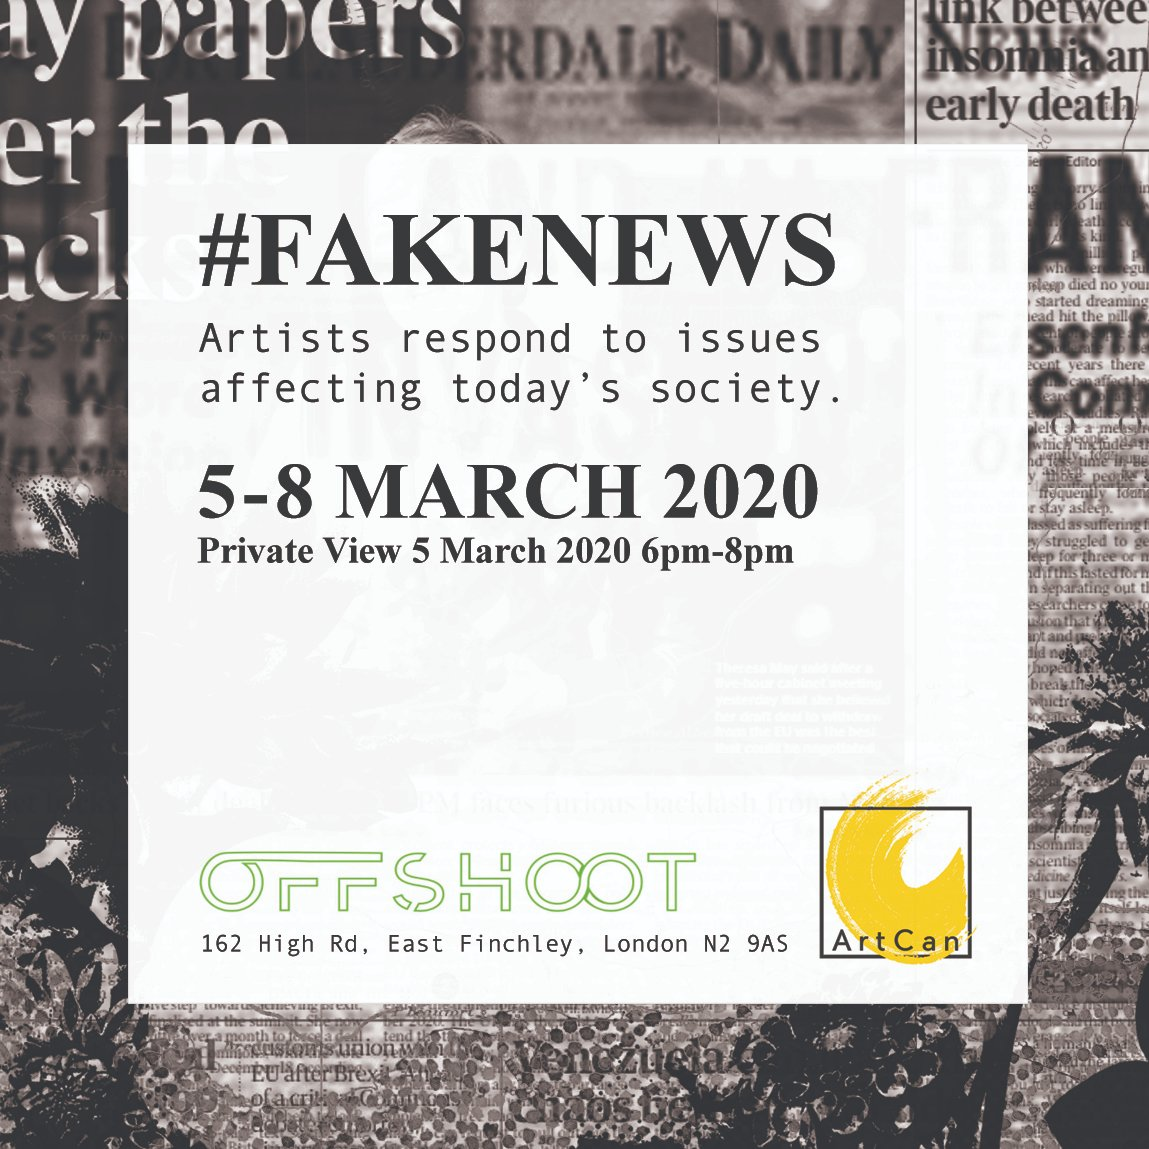 I've been working on an exhibition these past few months with @RoshaNutt and @theworkshopn4 and it opens next week! Do come along if you can. RSVP to the Private View here: https://www.eventbrite.co.uk/e/fakenews-private-view-tickets-91527113059… #artexhibition #northlondon pic.twitter.com/1qTffIDUTe